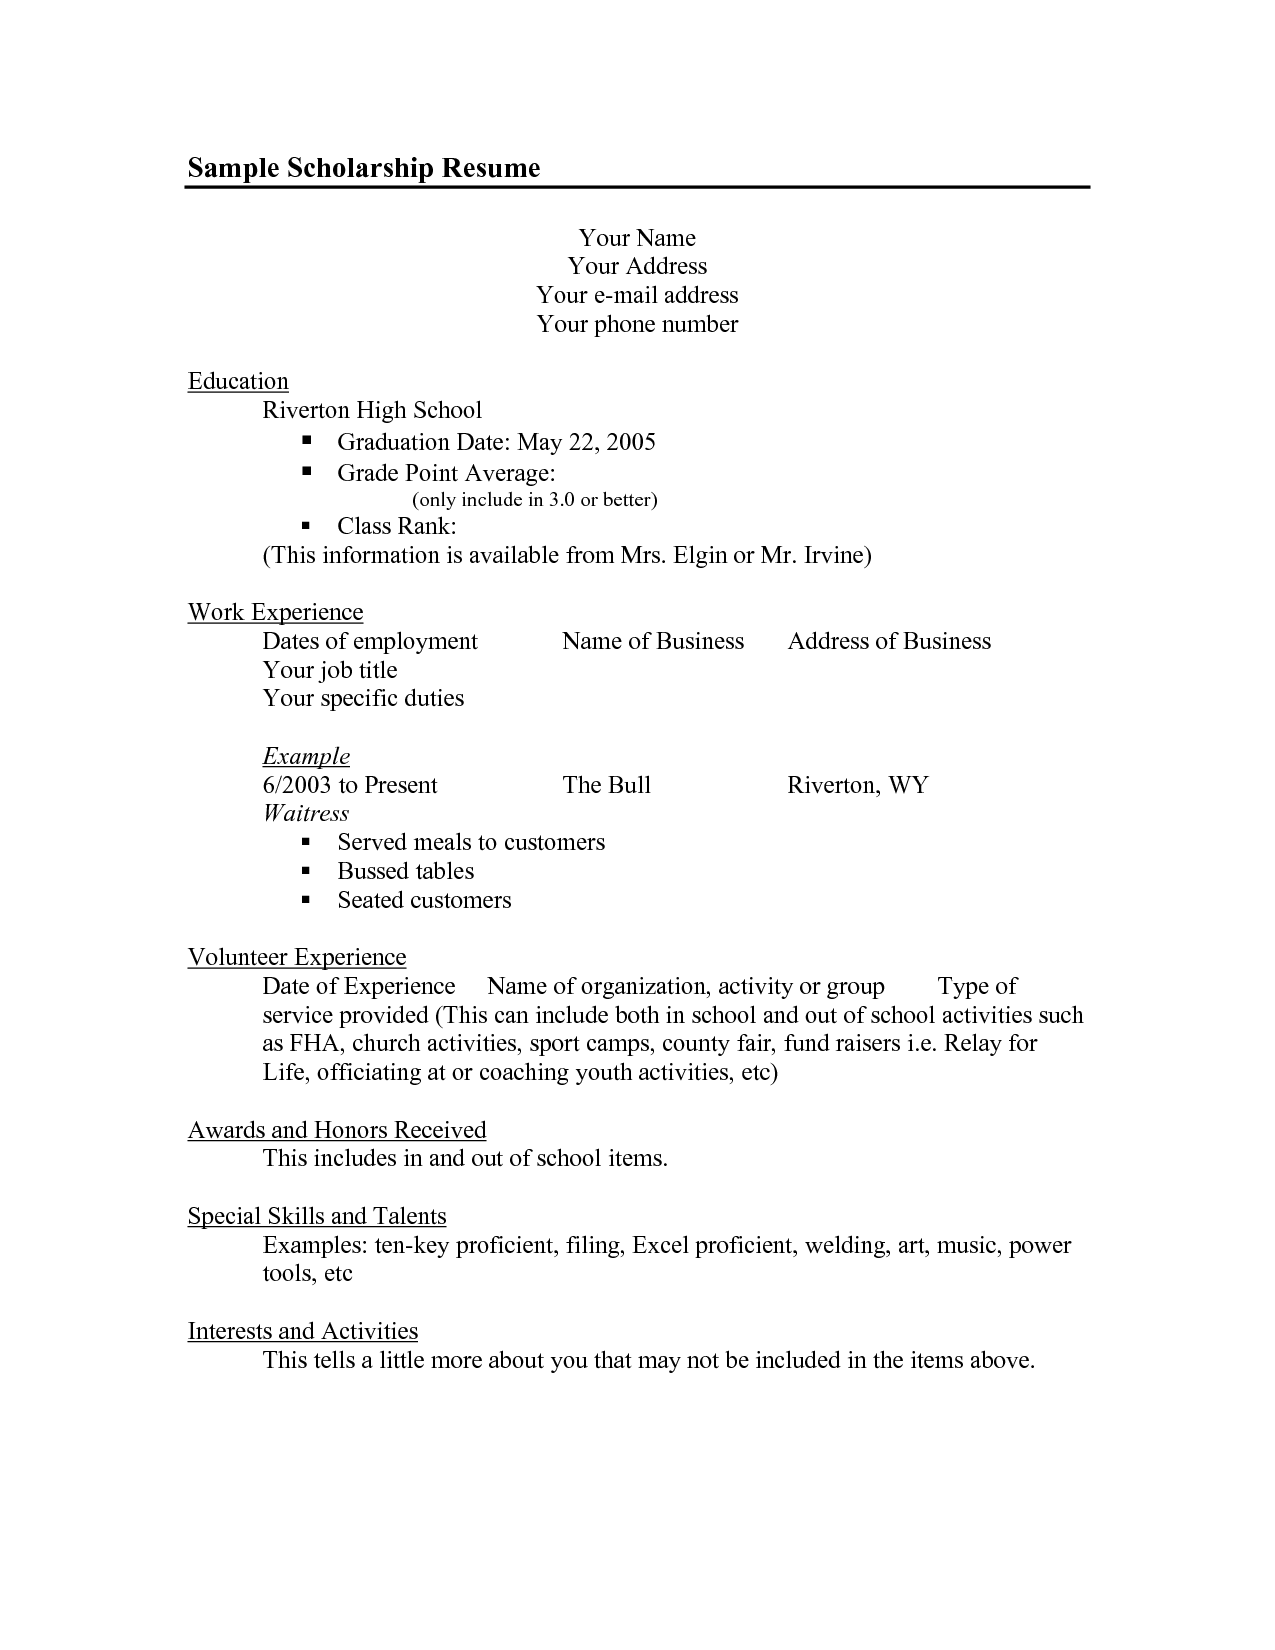 scholarship resume template fsgcrcom mvxhldbr high school. Resume Example. Resume CV Cover Letter